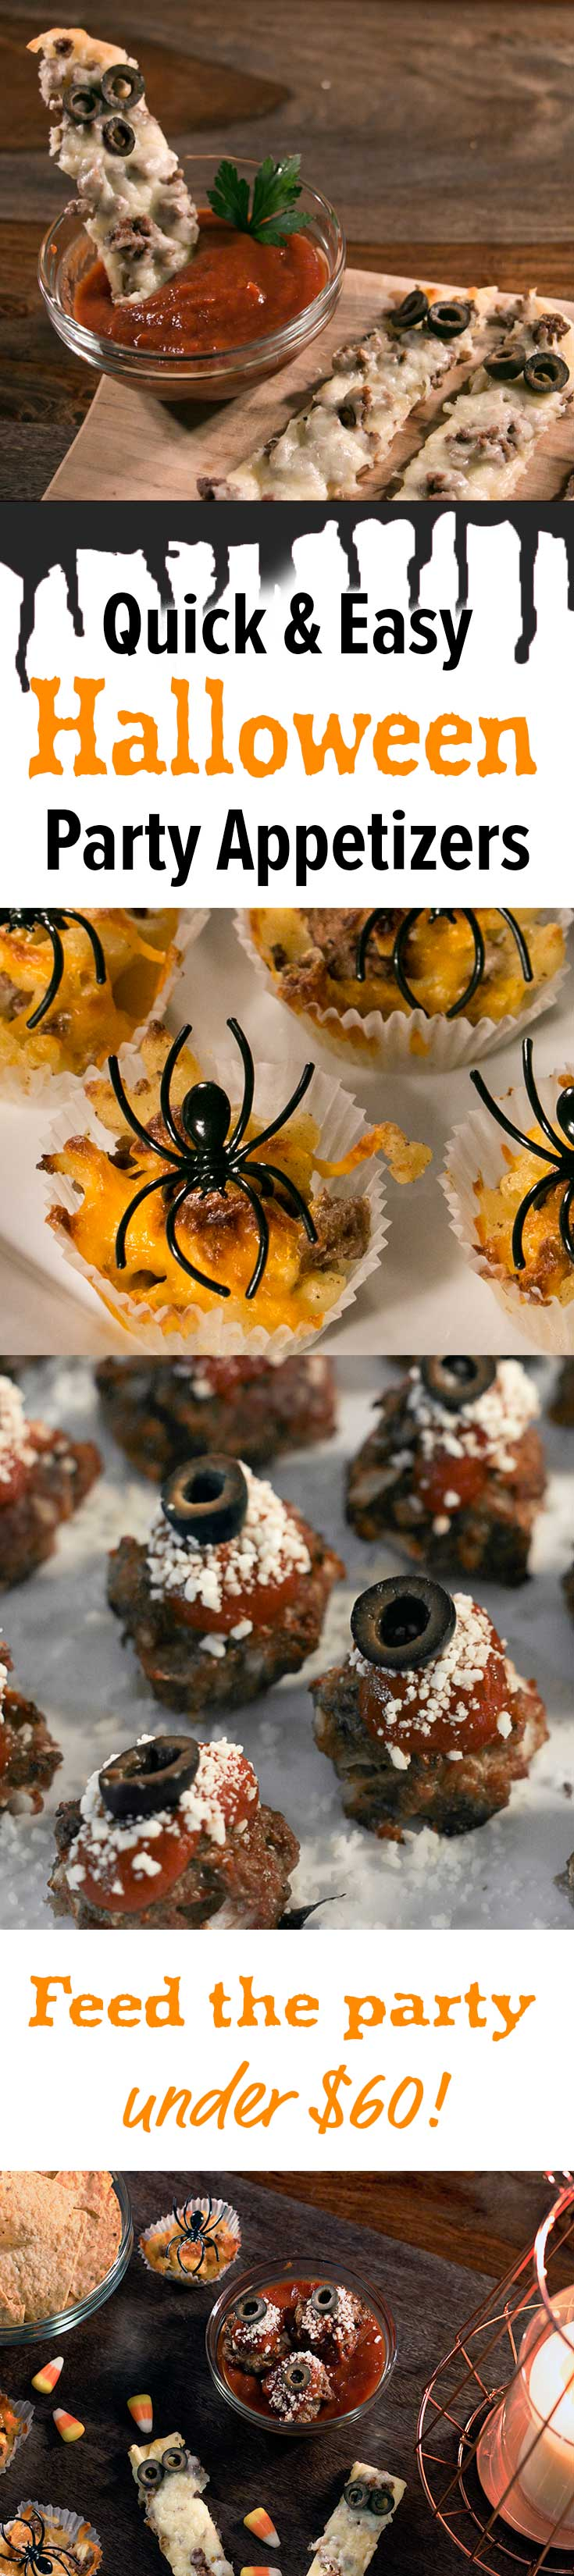 we love these quick, easy halloween party appetizers. recipes